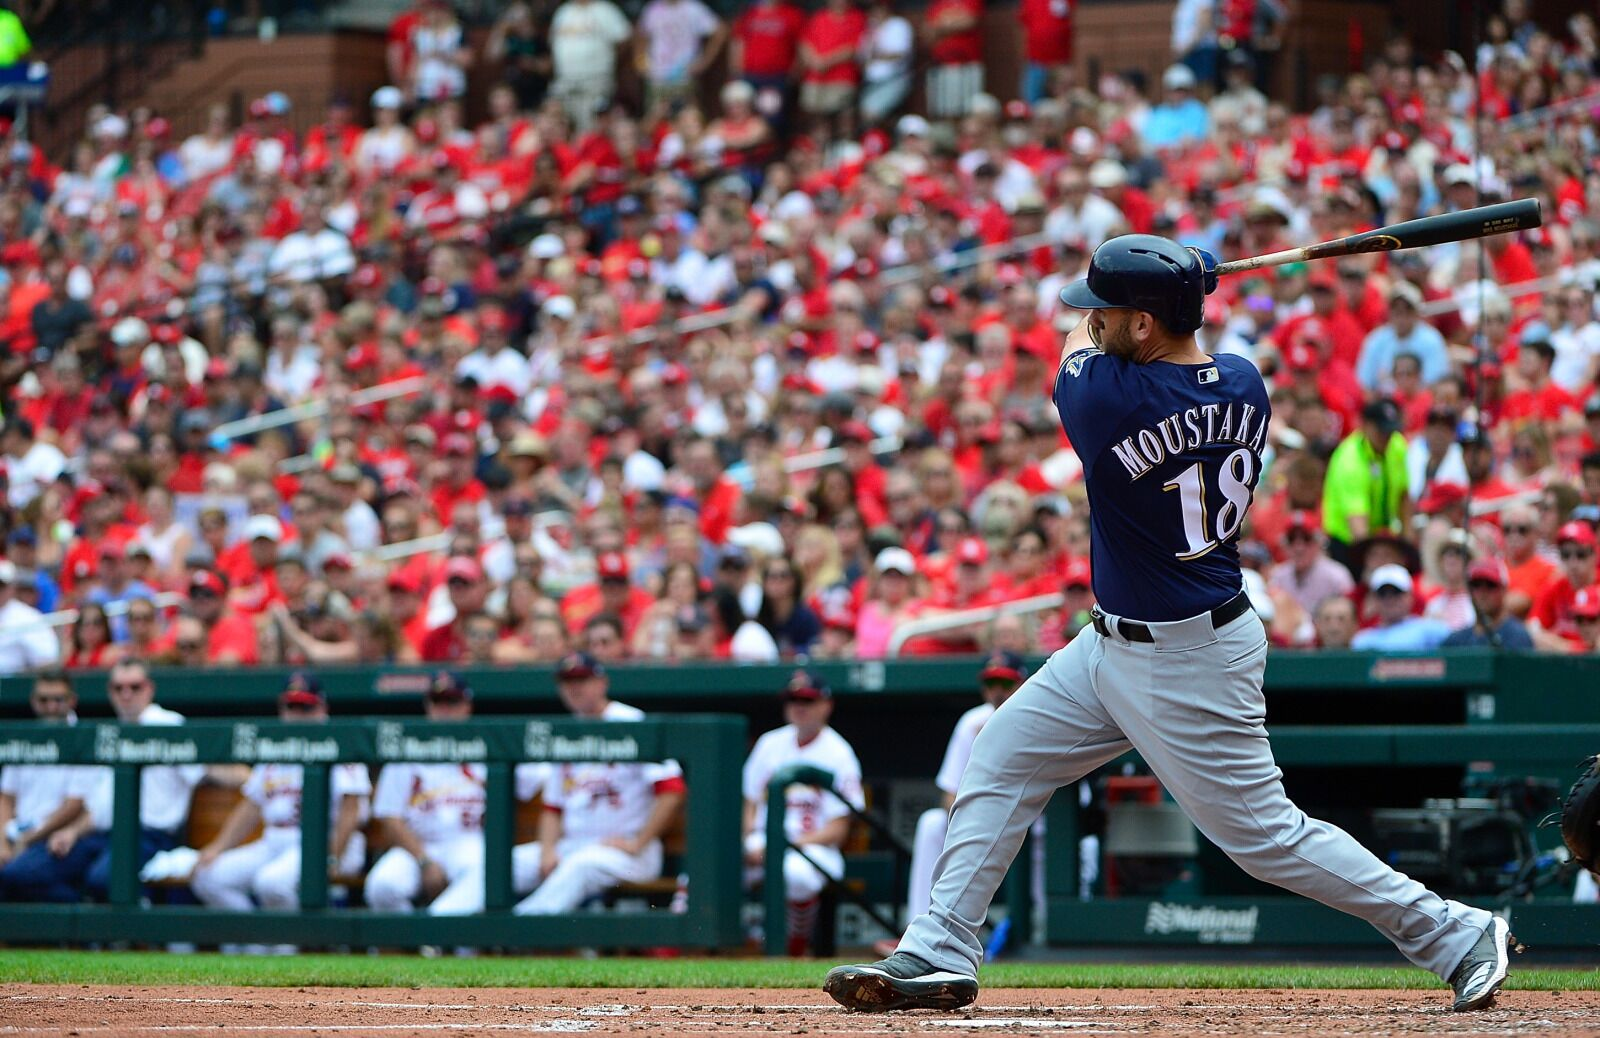 St. Louis Cardinals: Could Mike Moustakas be in the cards?